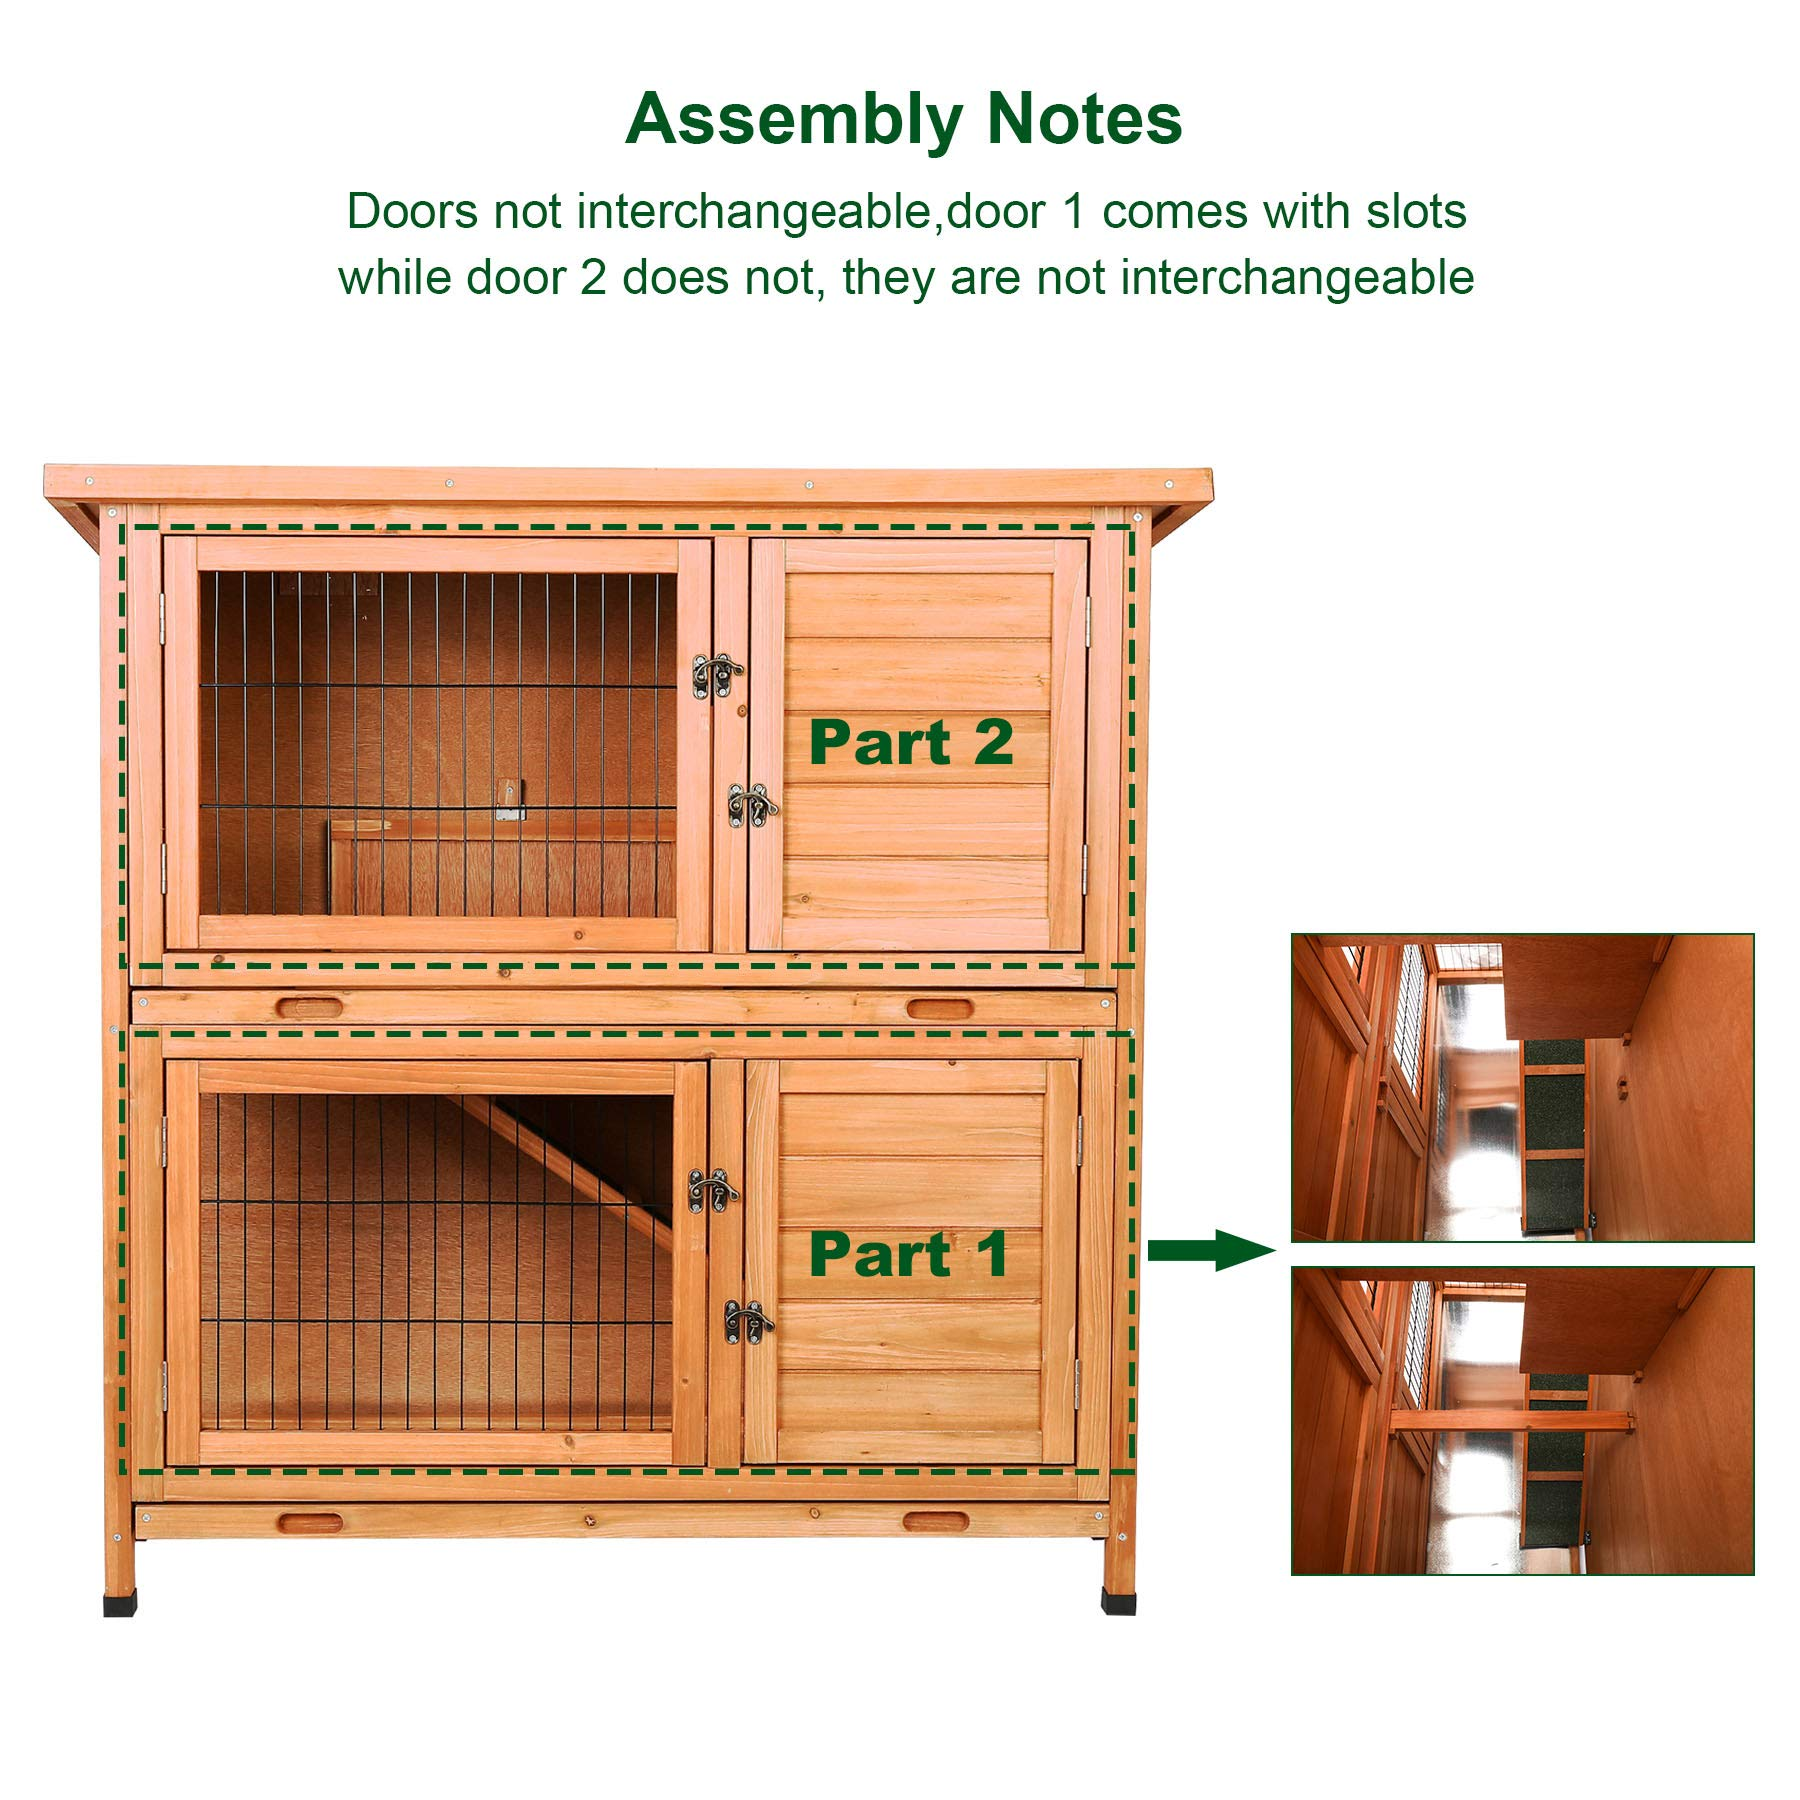 CO-Z 2 Story Outdoor Wooden Bunny Cage Rabbit Hutch Guinea Pig House in Nature Color with Ladder for Small Animals by CO-Z (Image #7)